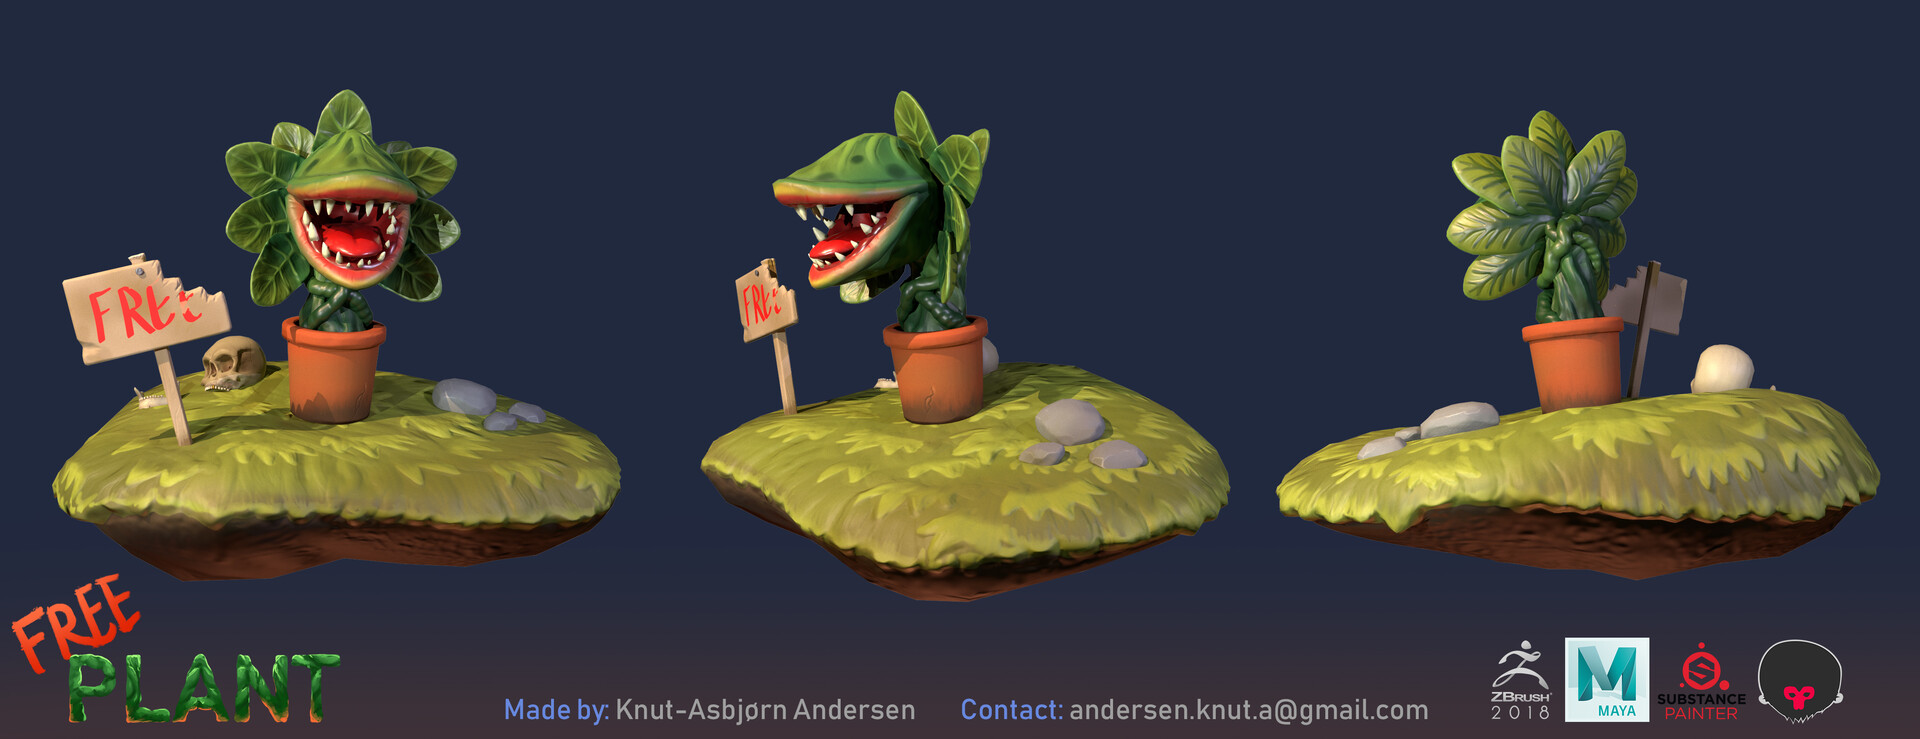 Knut asbjorn andersen free plant side shaded